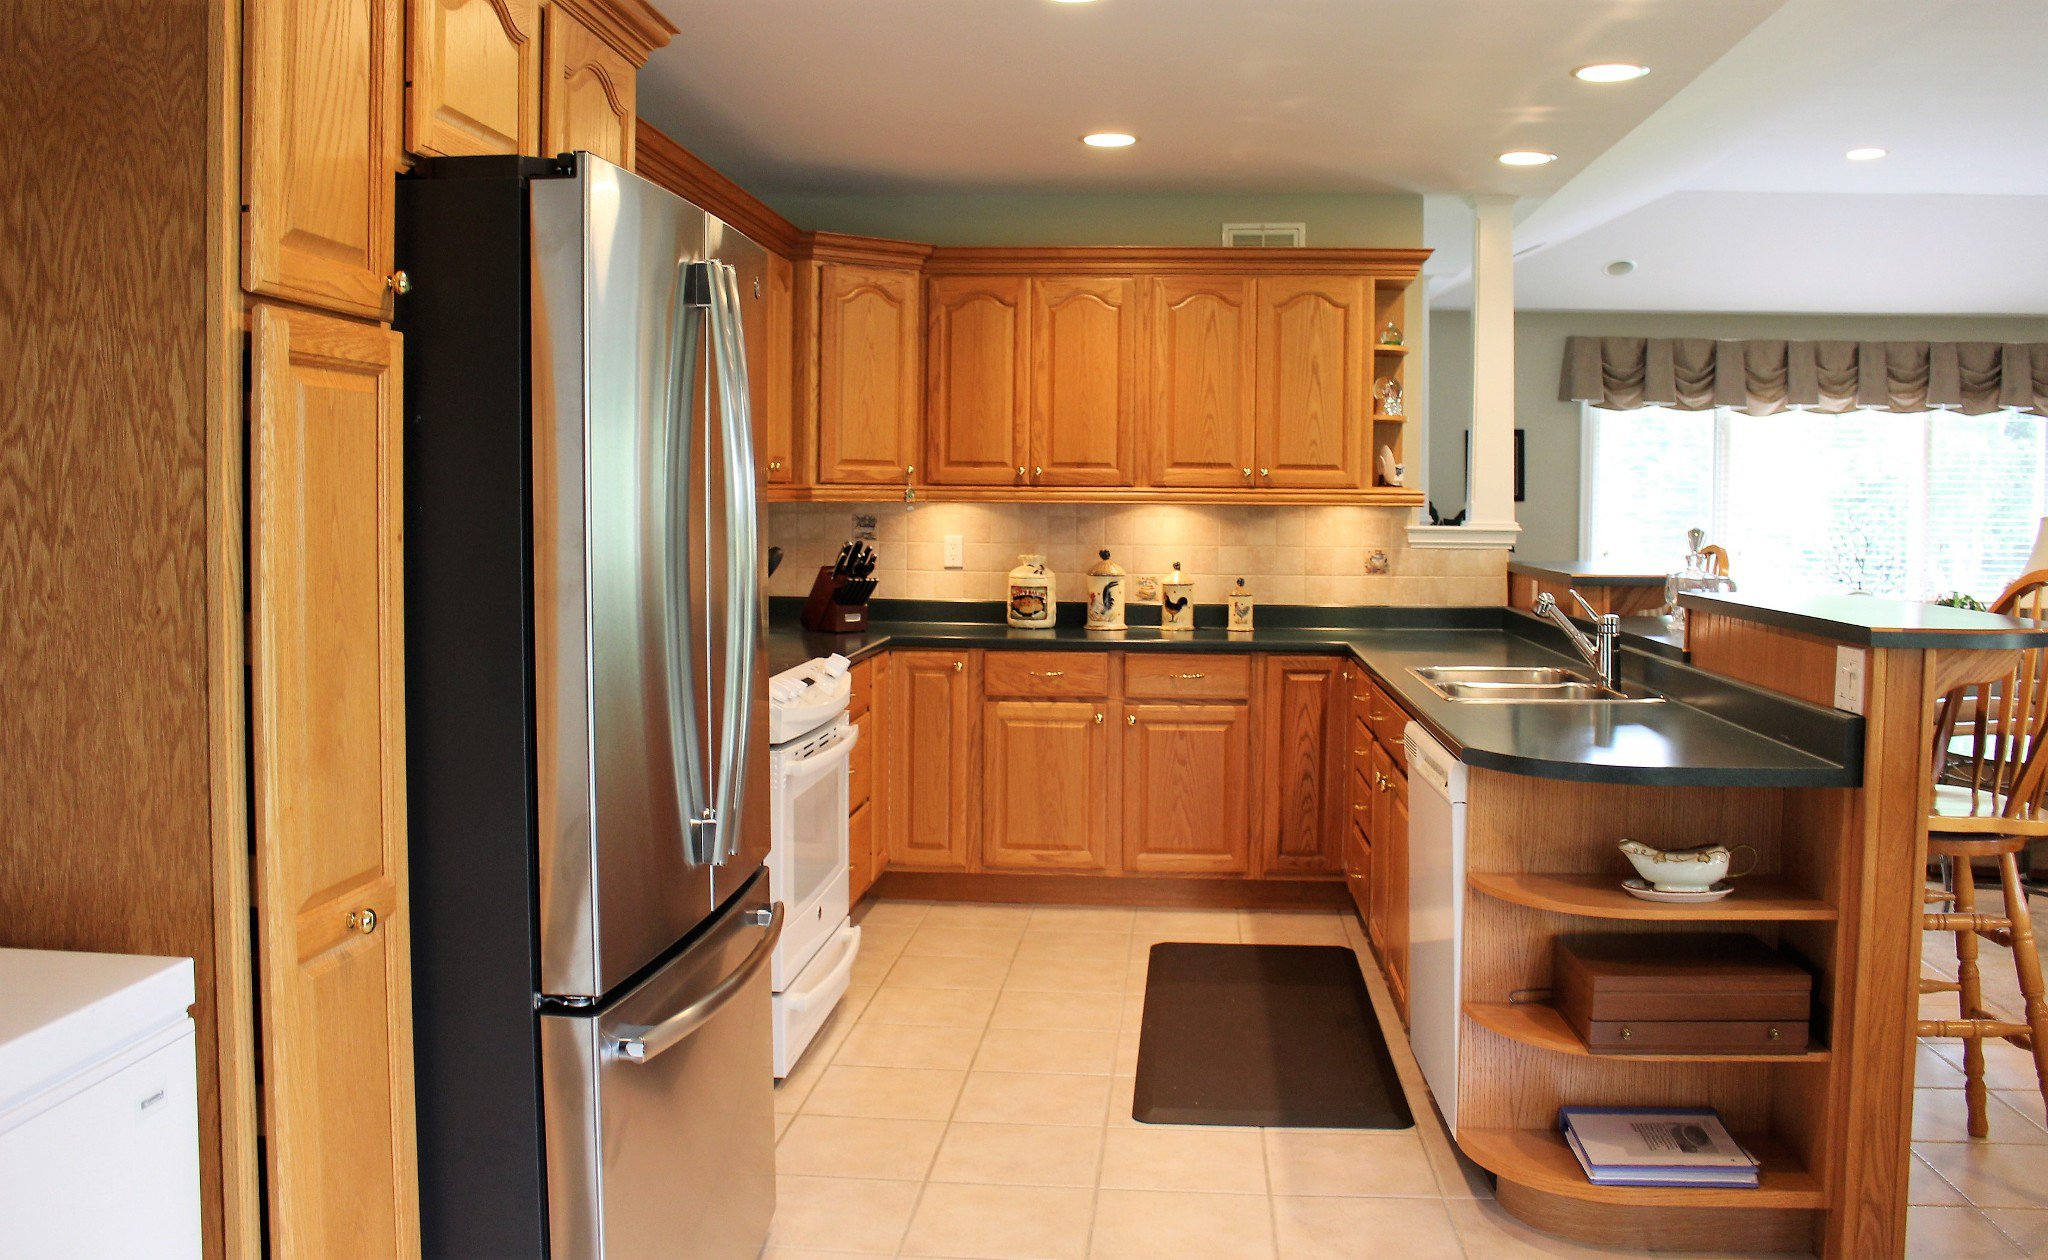 Photo 17: Photos: 159 Nawautin Drive in Grafton: Residential Detached for sale : MLS®# 40012652